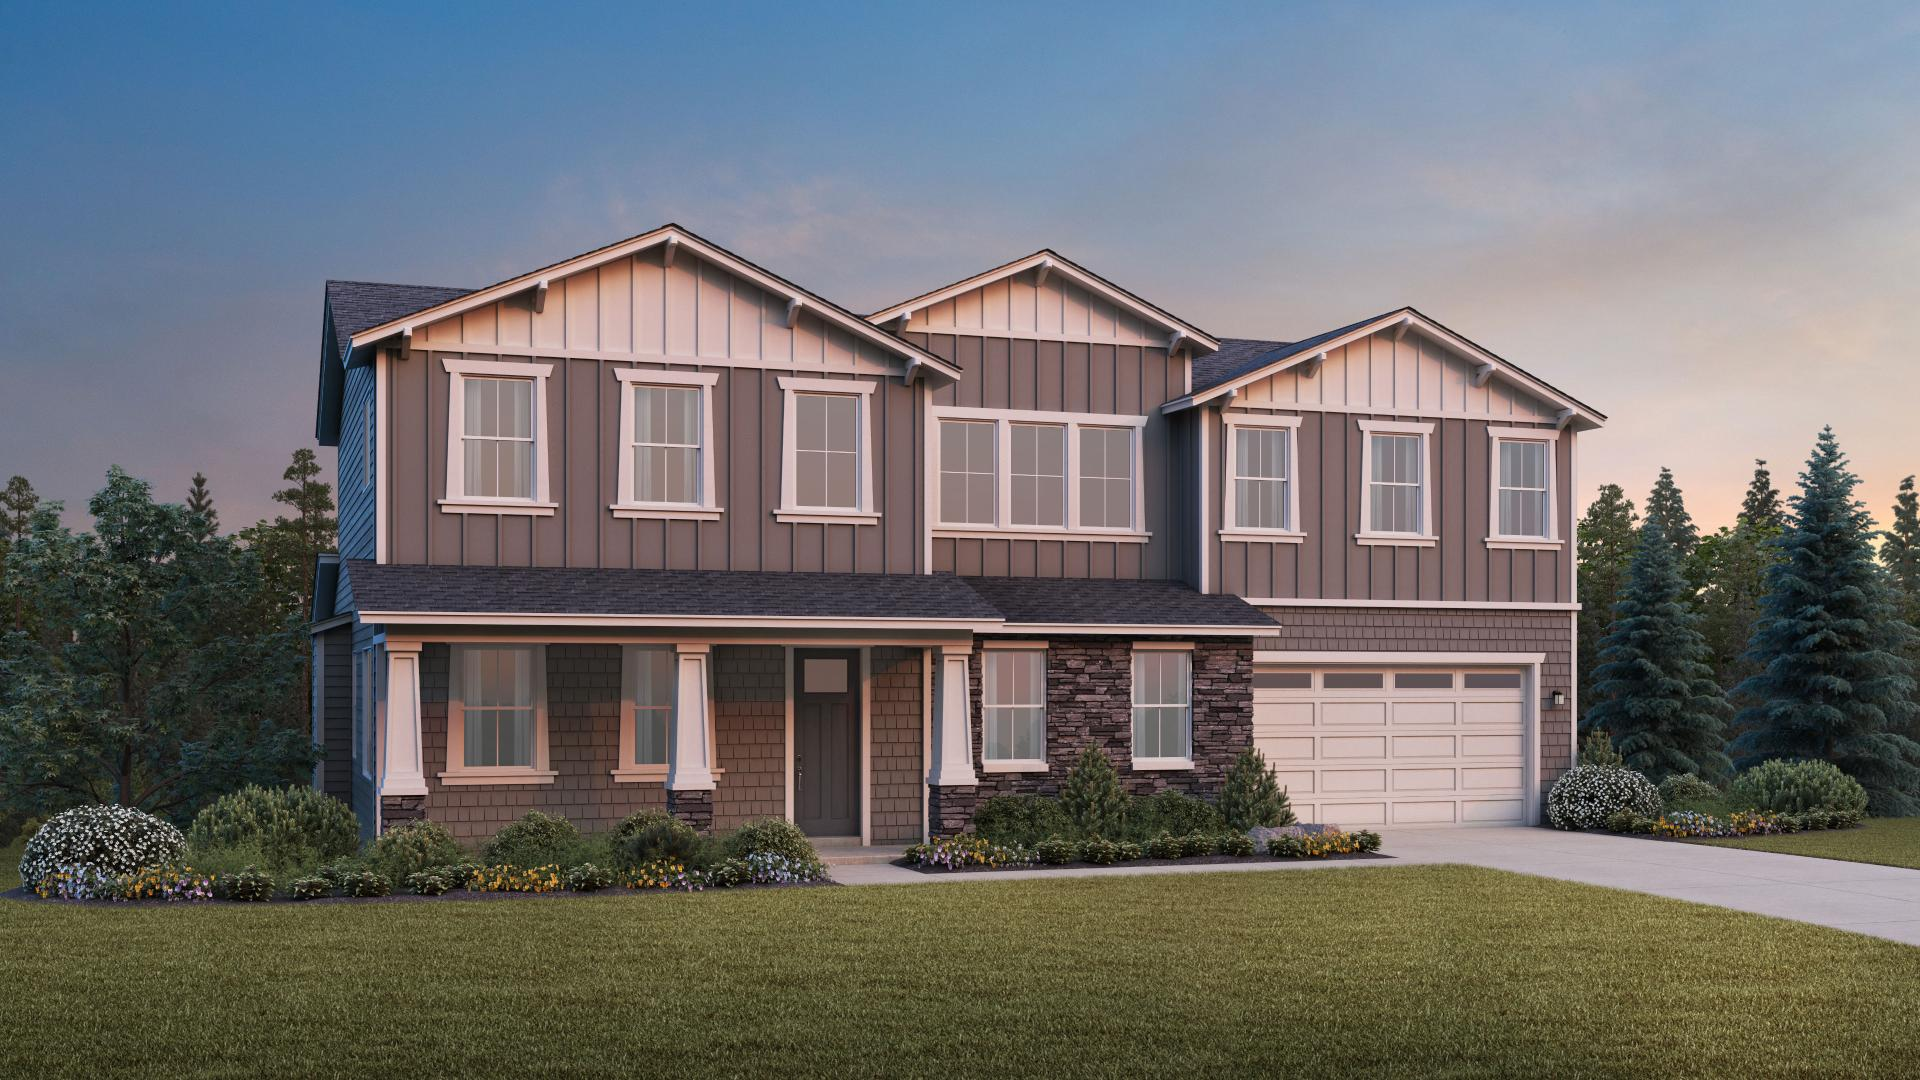 Spacious 6-bedroom Johnston with Basement home design